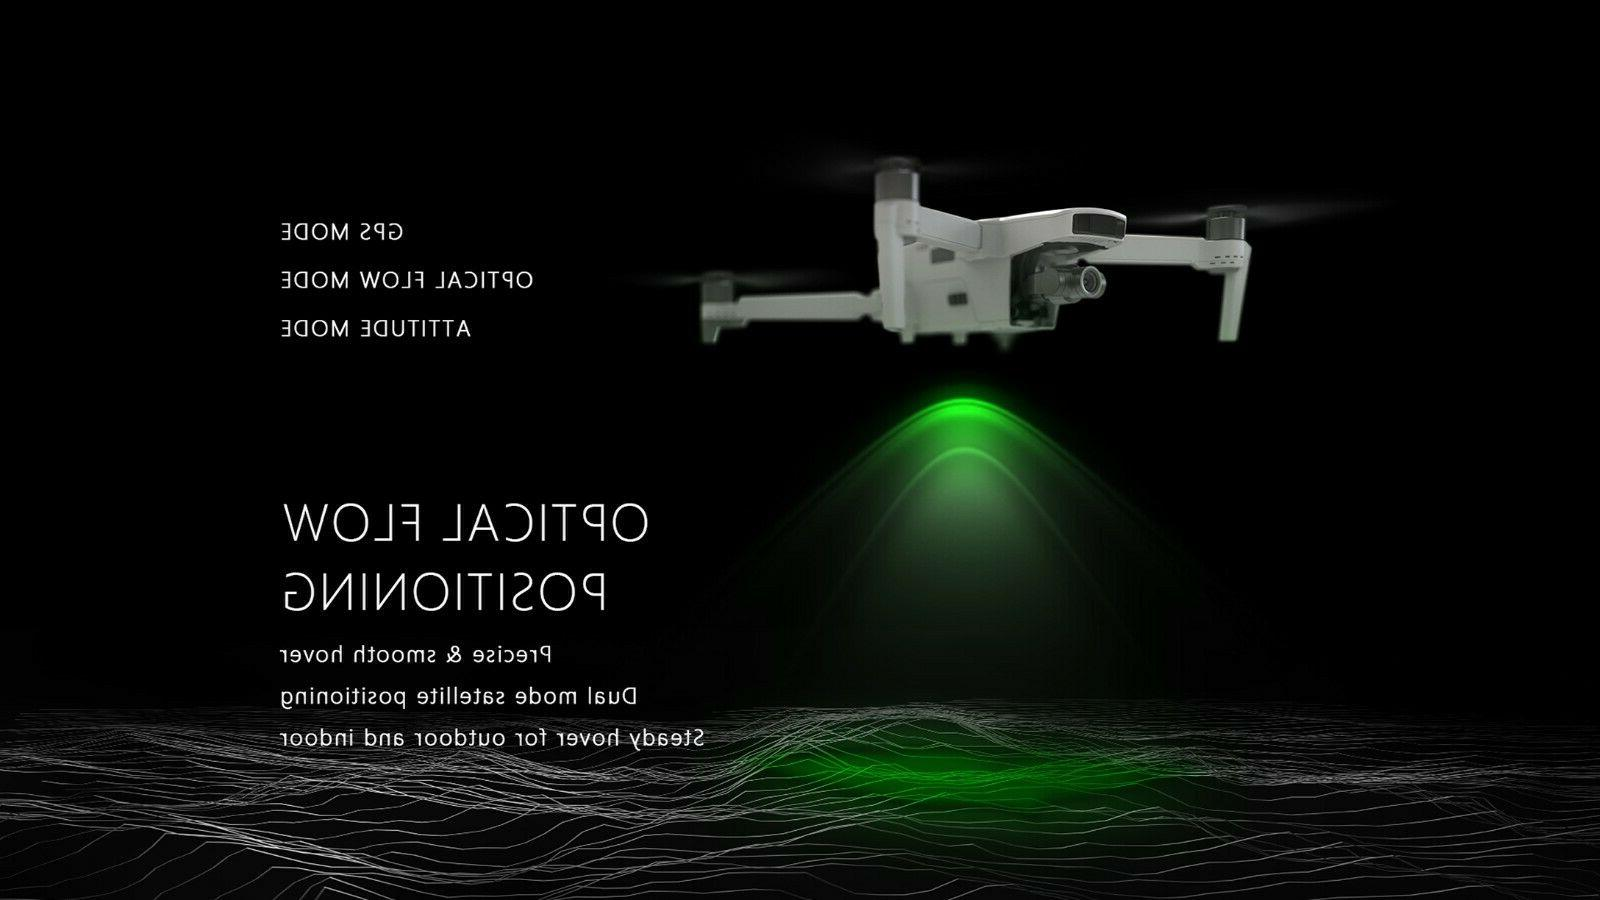 Hubsan 2+ GPS 9KM with 4K 60fps 3-axis